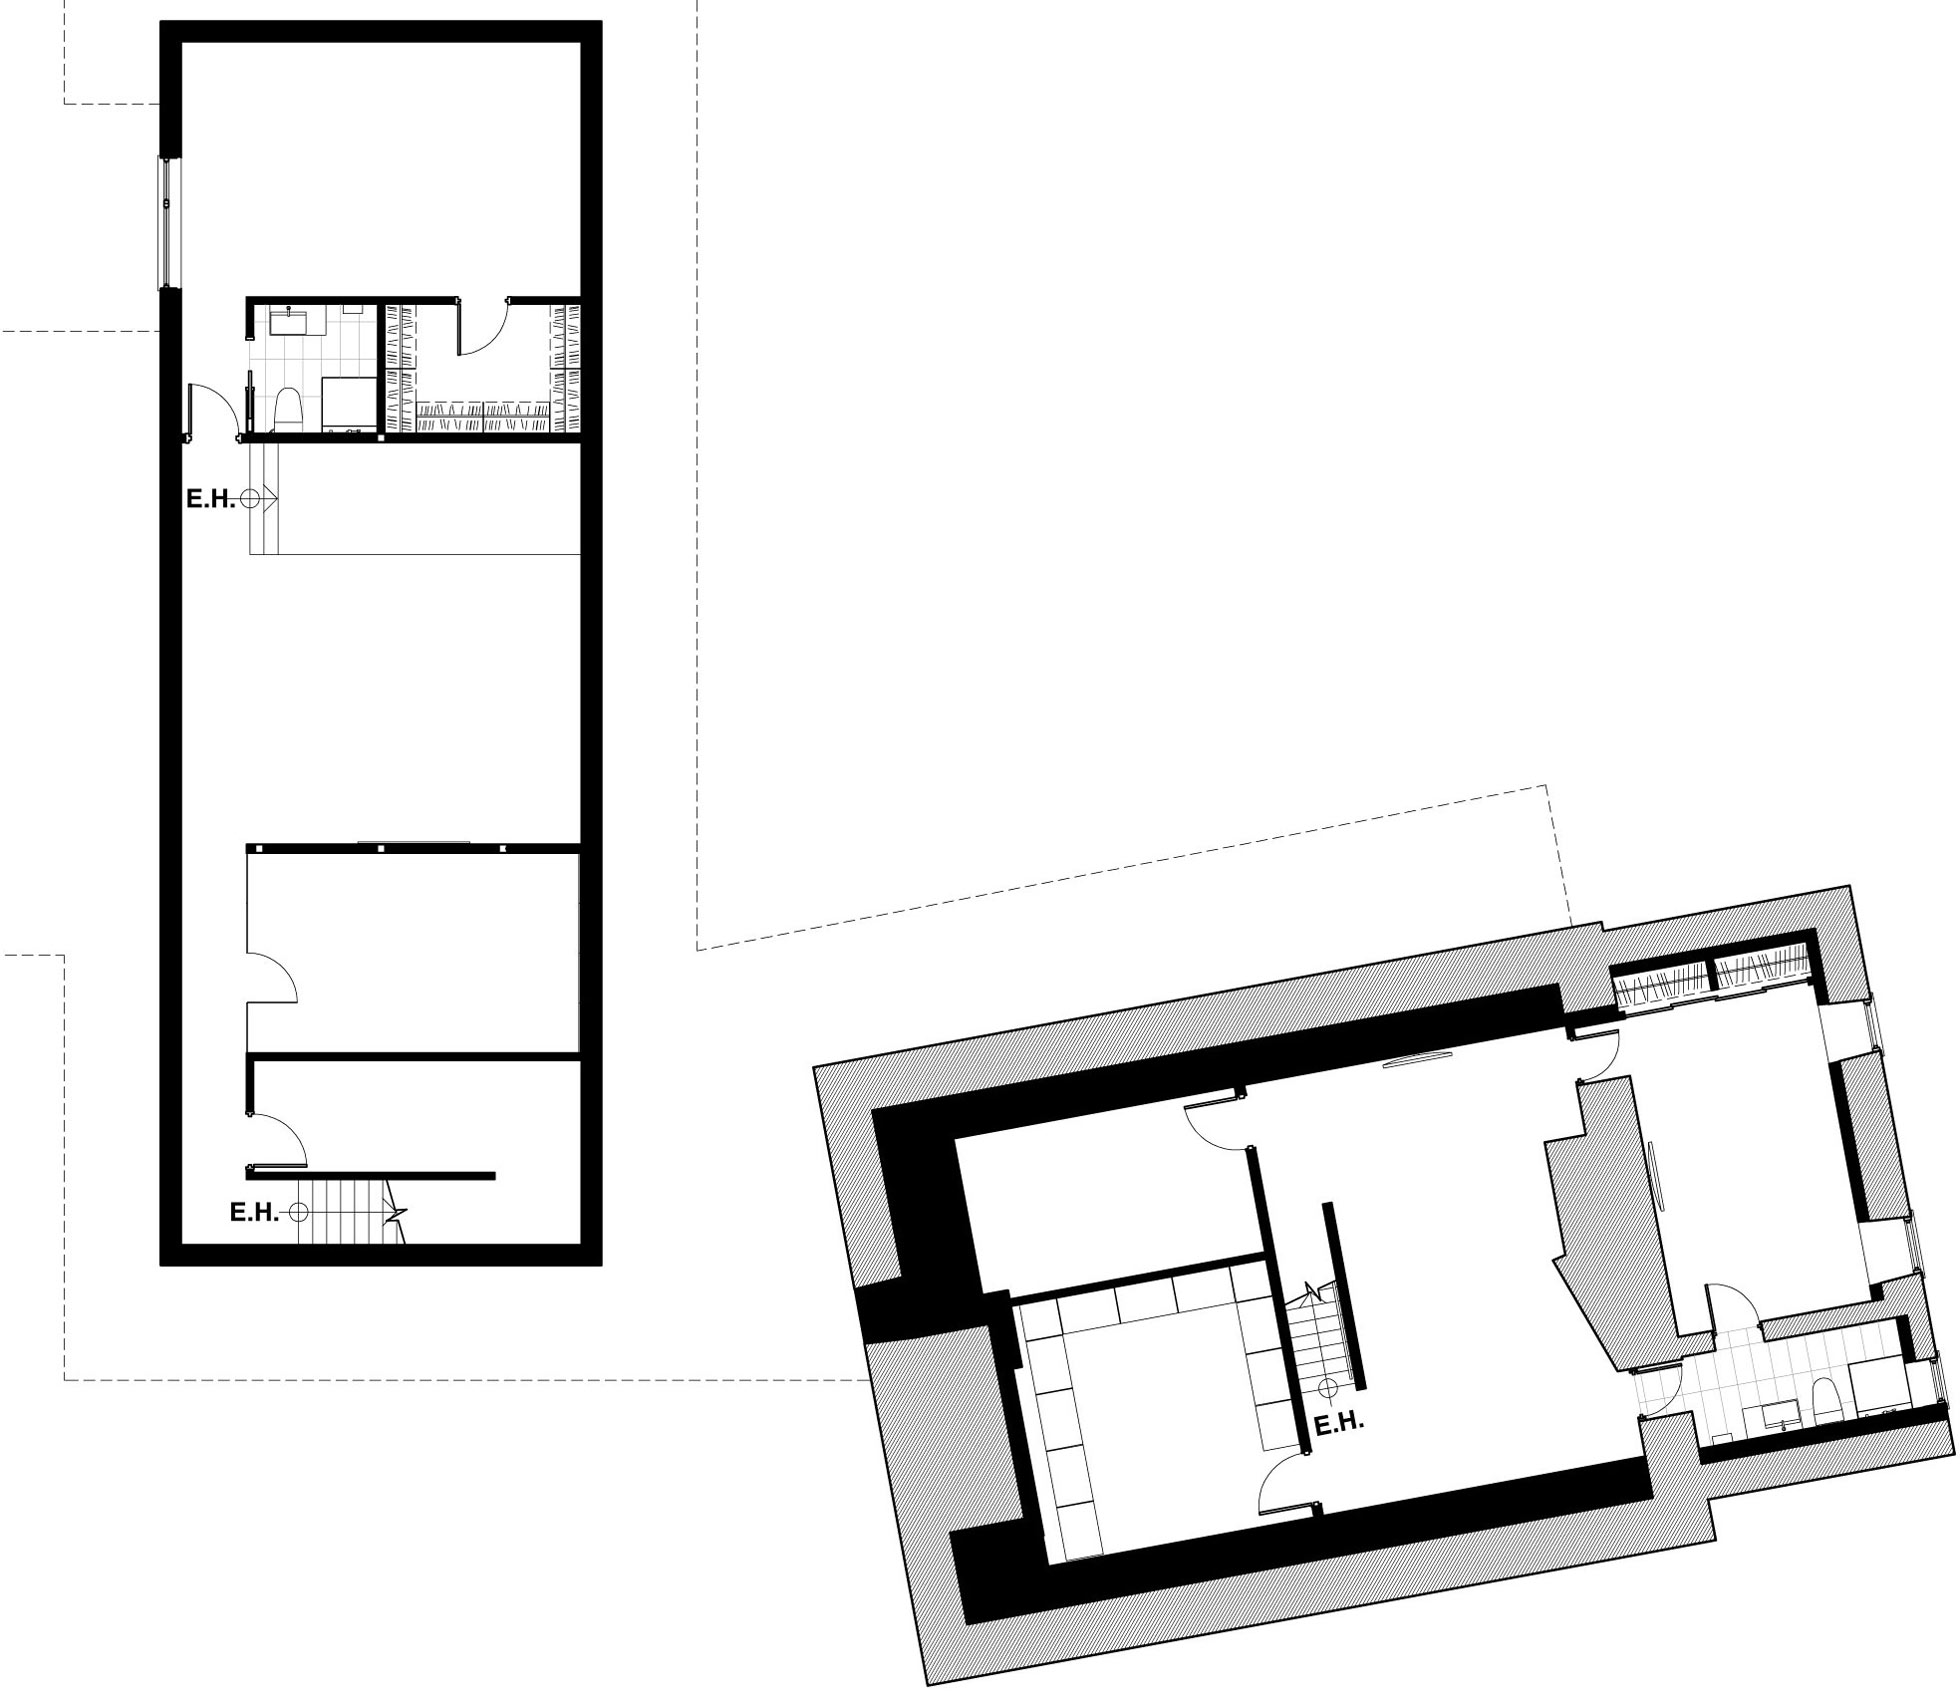 Second Floor Plan, Renovation and Addition in Dorval, Canada